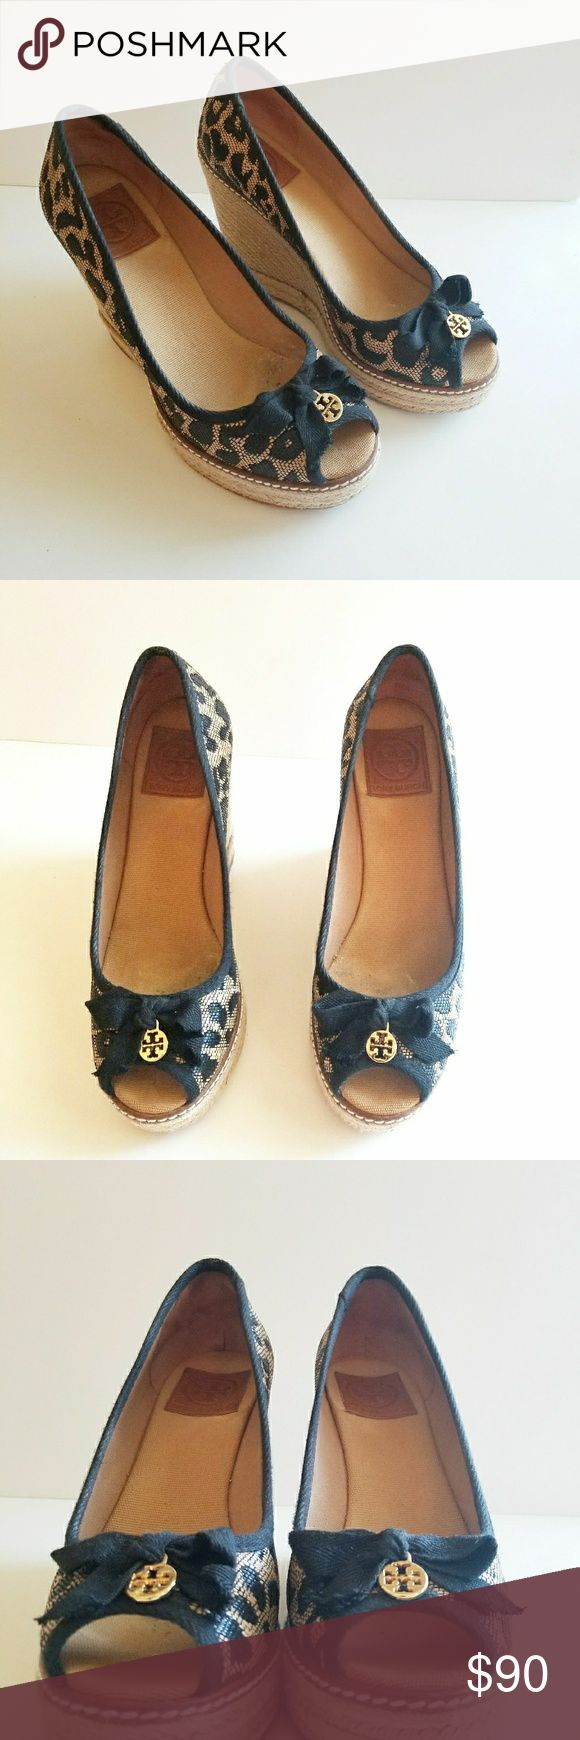 EUC Tory Burch Jackie Leopard Espadrille Sz 9 EUC Tory Burch Jackie Leopard Espadrille Sz 9. Worn handful of times and soles in great condition (pic 5). Original box. Style 11148425. Color 246 Natural/Black Tory Burch Shoes Espadrilles